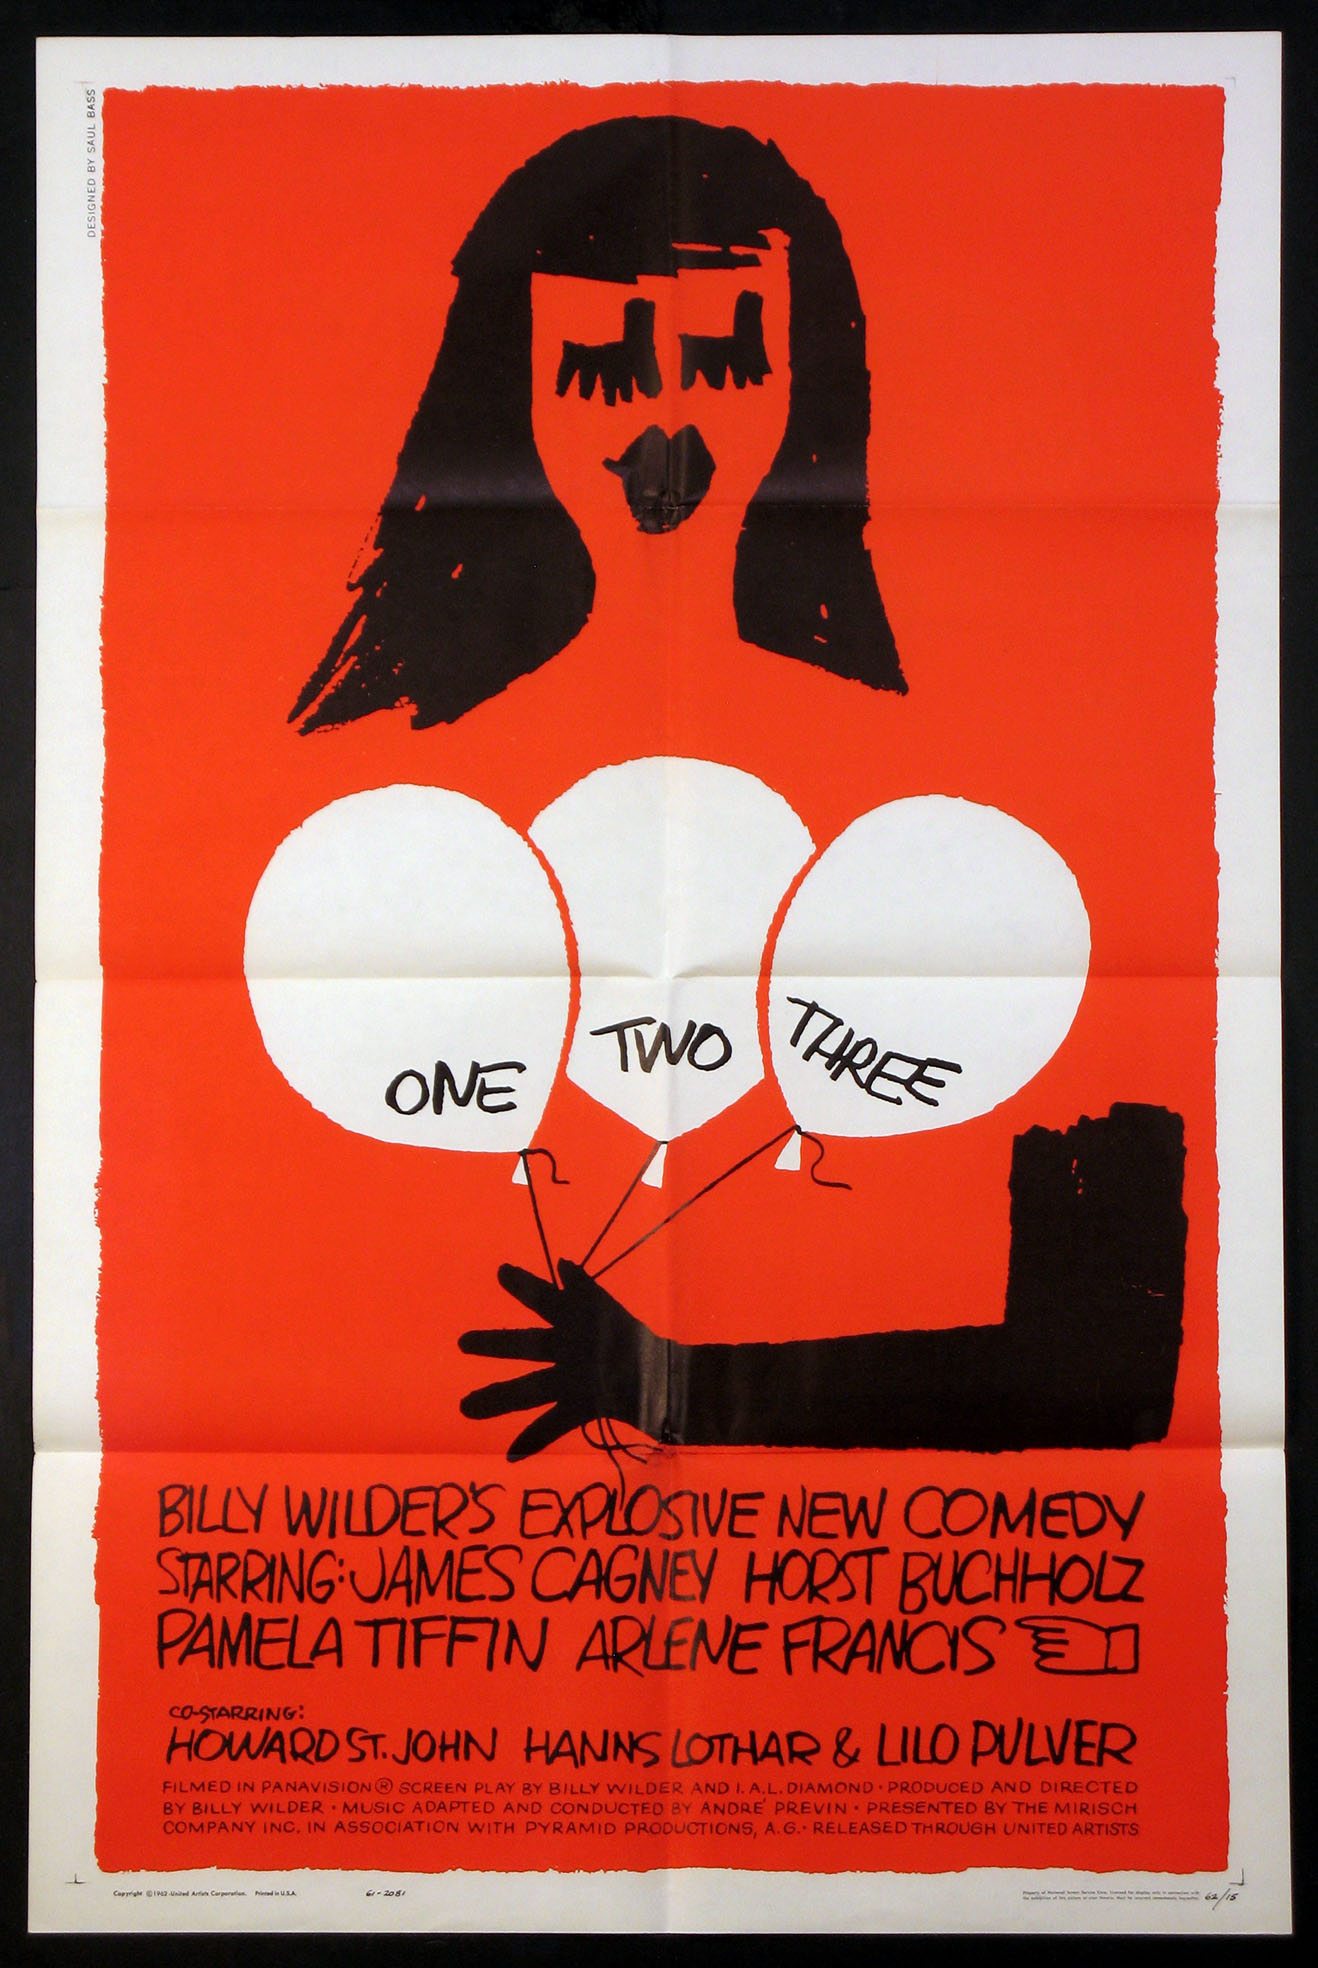 ONE, TWO, THREE (One Two Three) @ FilmPosters.com